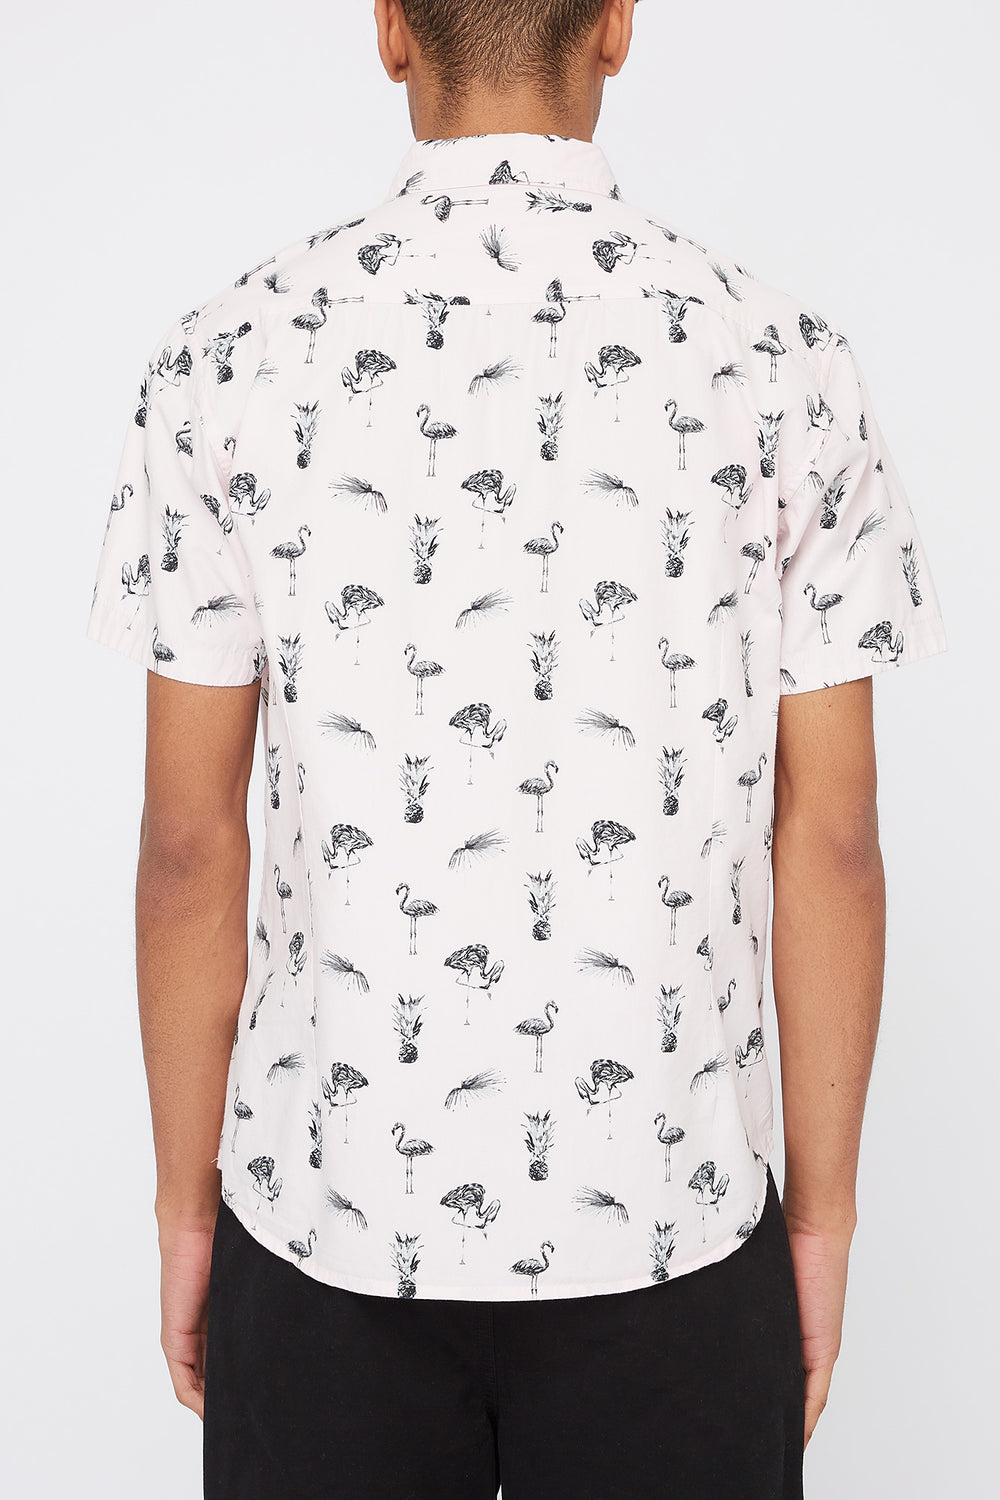 Artistry In Motion Mens Flamingo Button-Up Shirt Peach